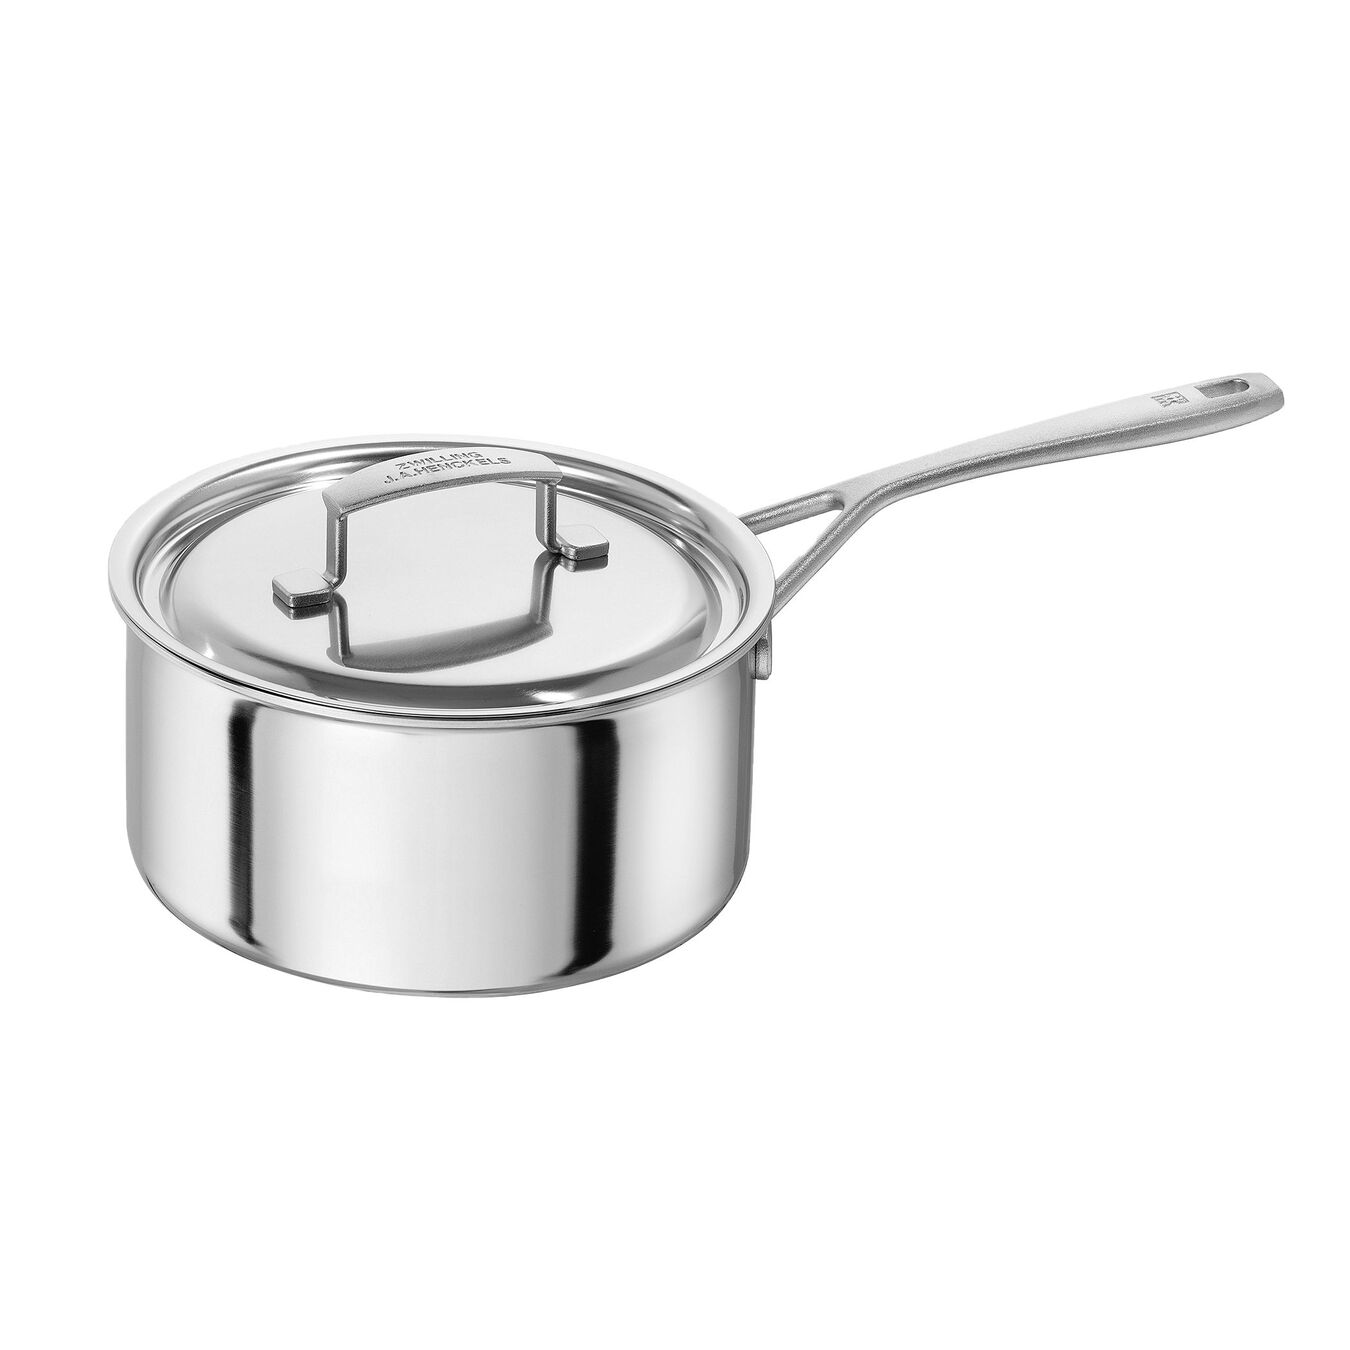 10-pcs 18/10 Stainless Steel Ensemble de casseroles et poêles,,large 4